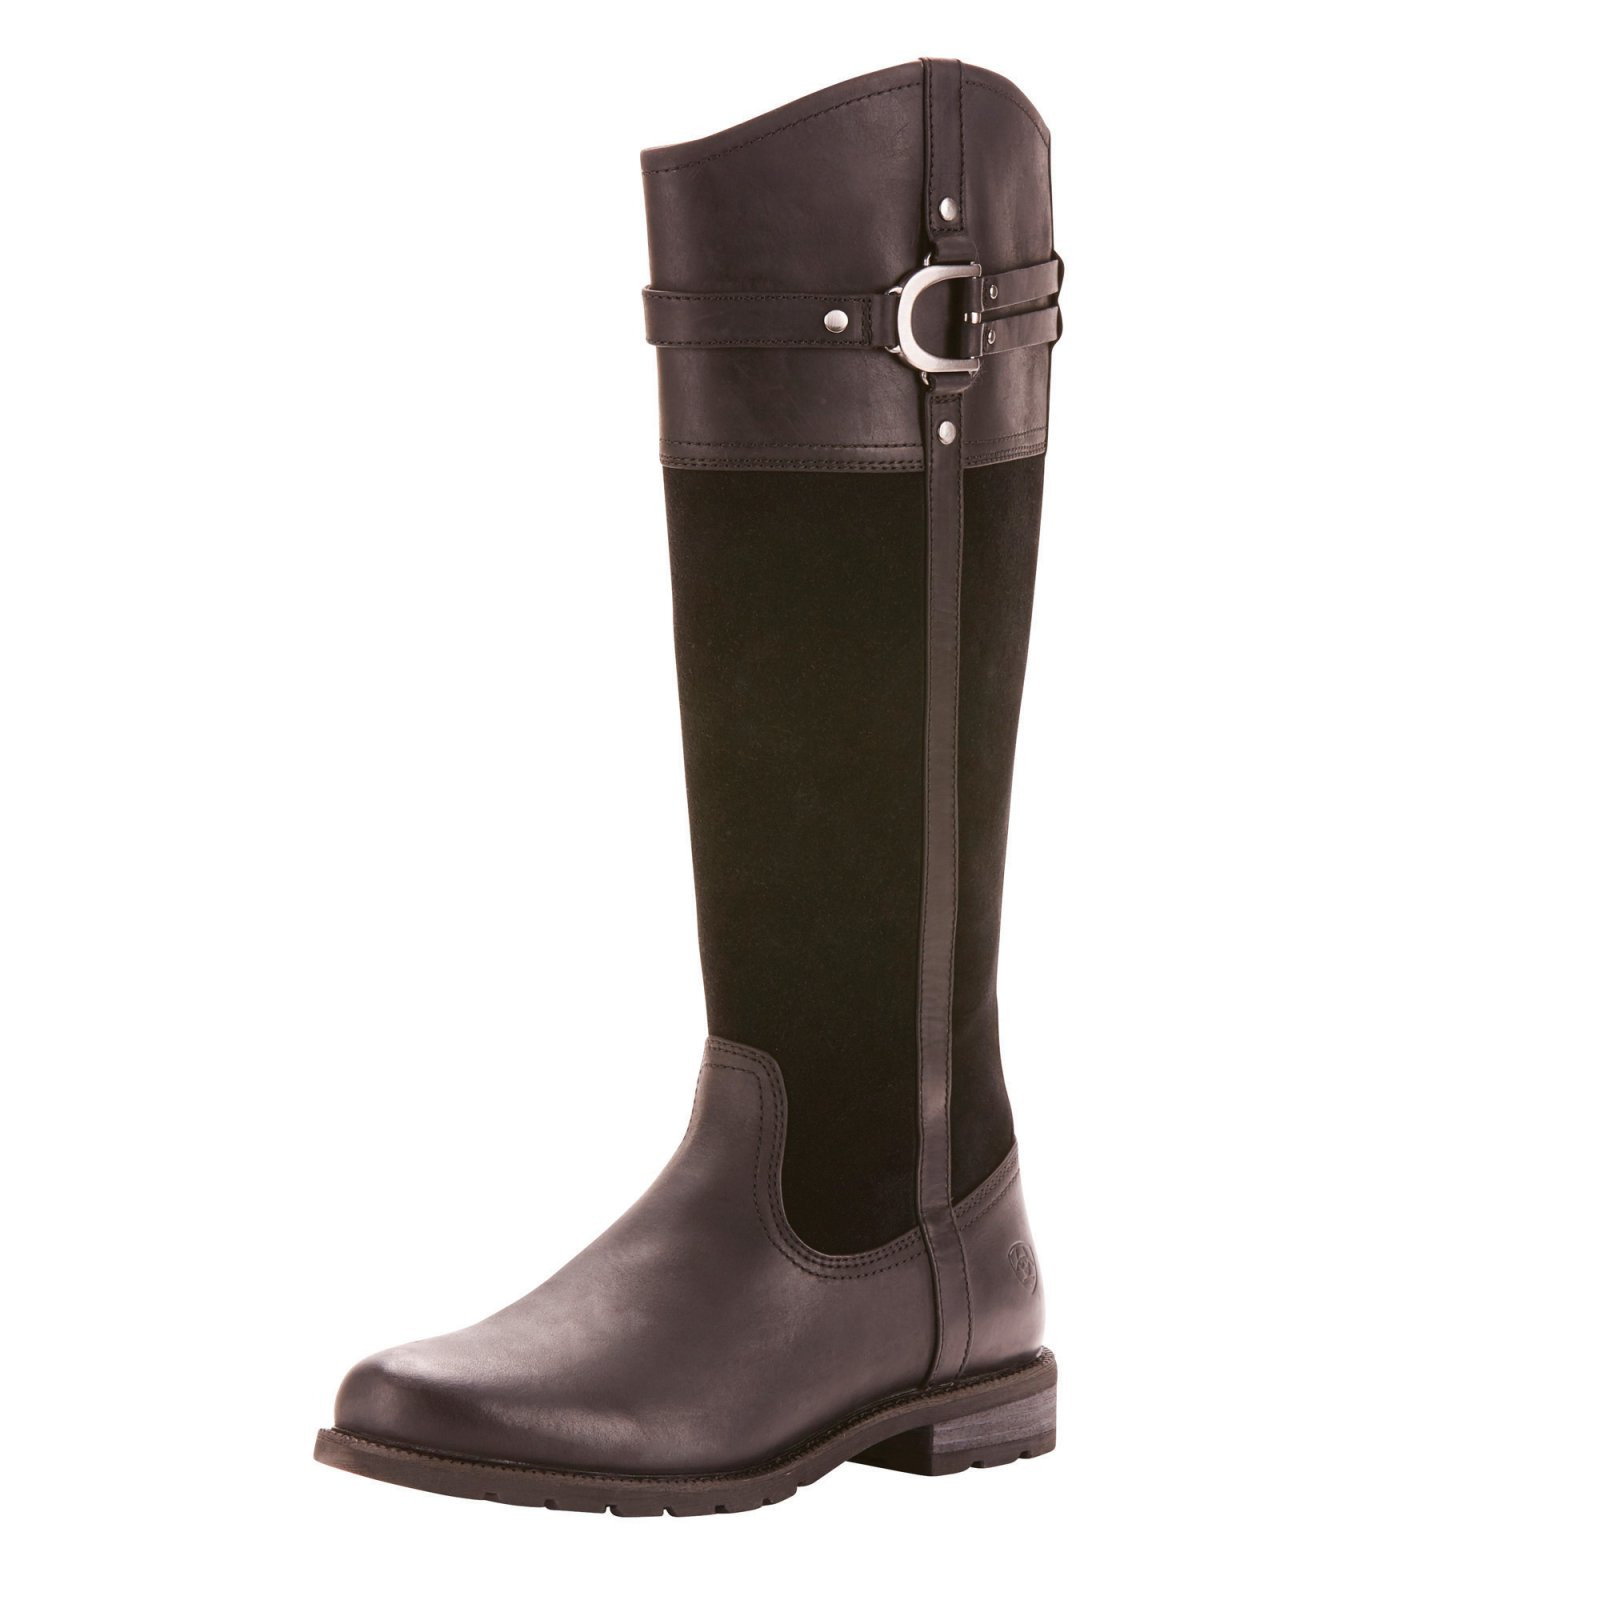 Loxley H2O from Ariat